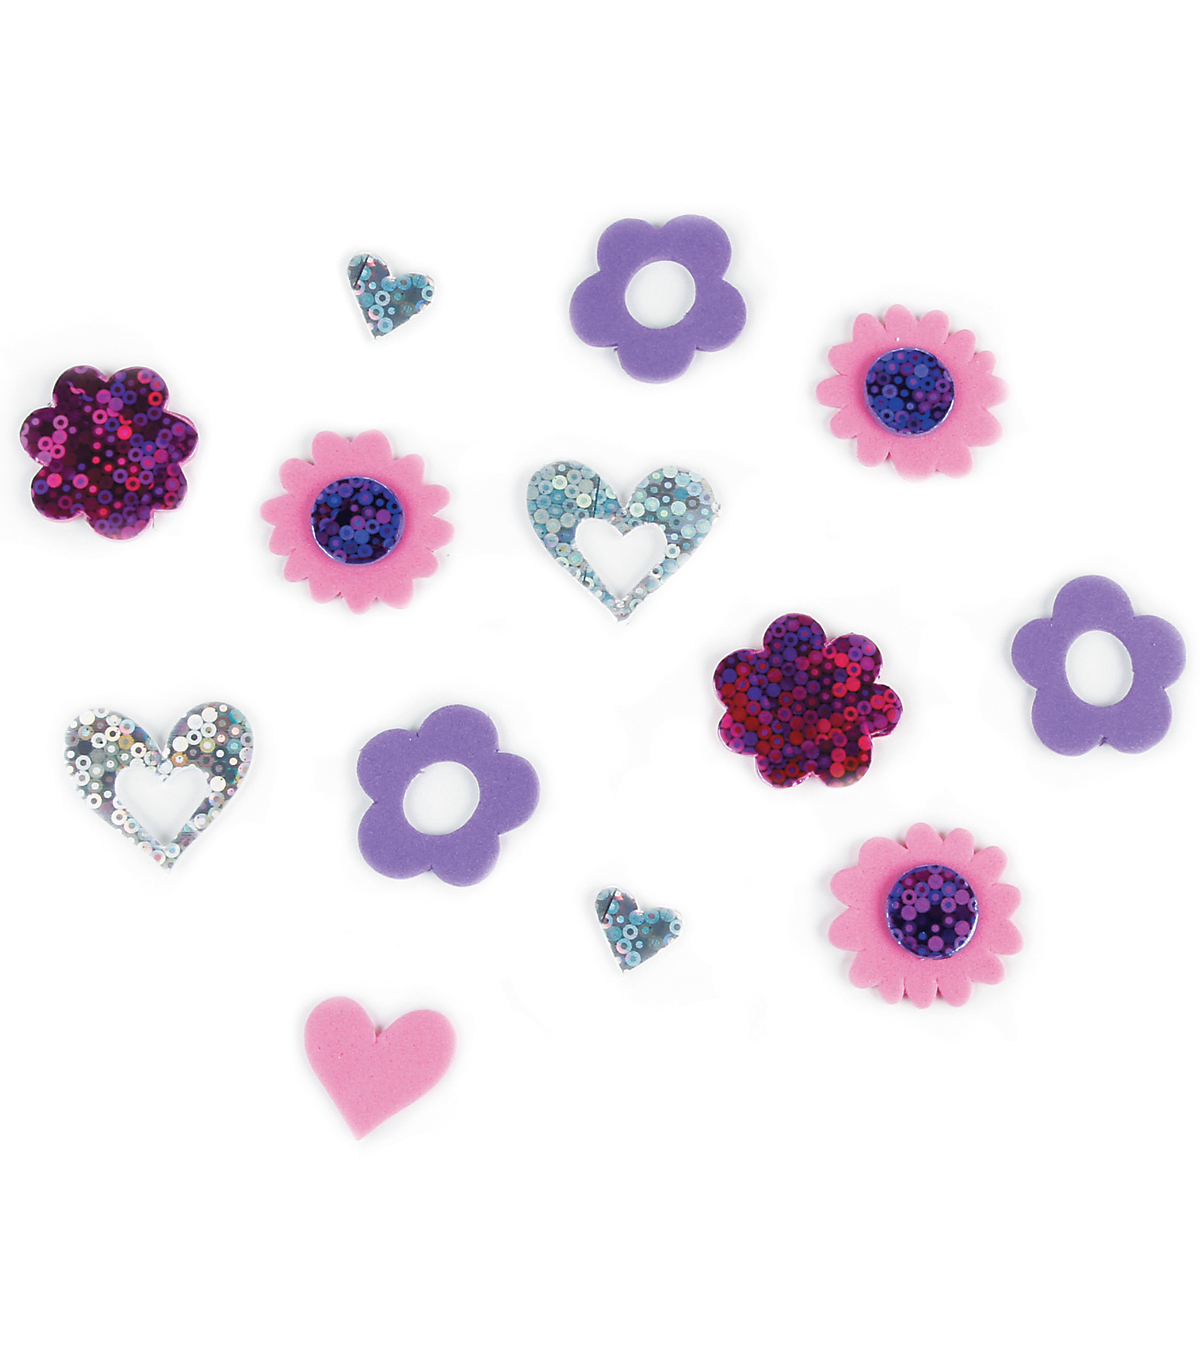 Foam Sticker Holographic-Hearts And Flowers 50/Pkg